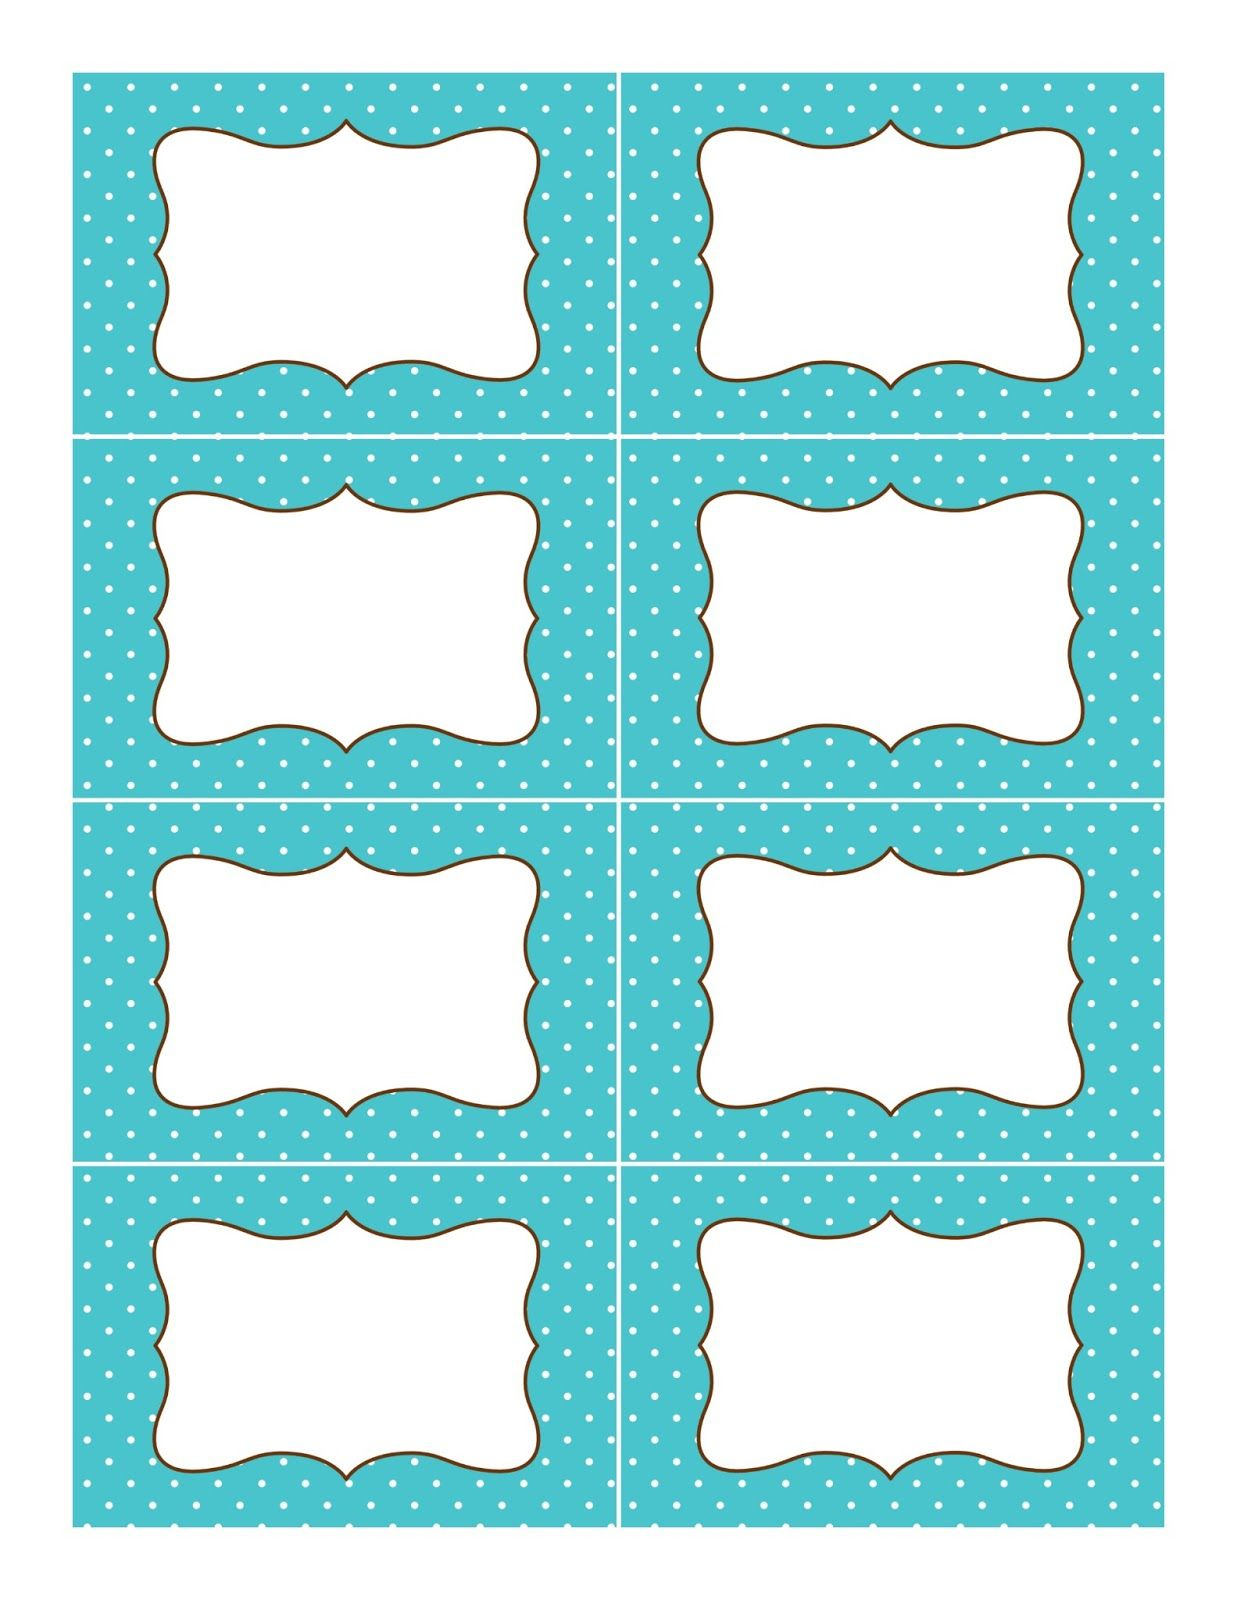 Pincrystal Long On Sweet Bar Buffet | Pinterest | Printable - Free Printable Buffet Food Labels